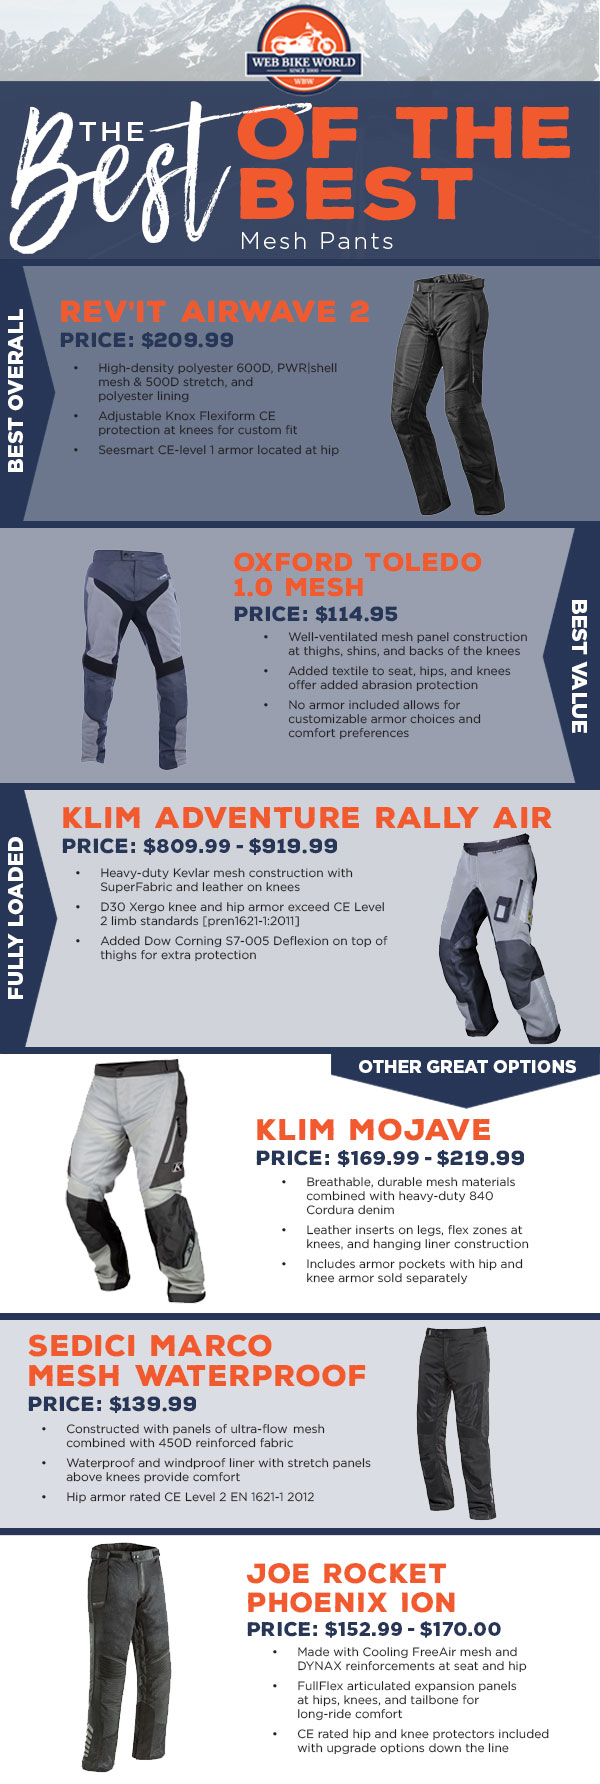 The Best Mesh Pants Infographic 2019